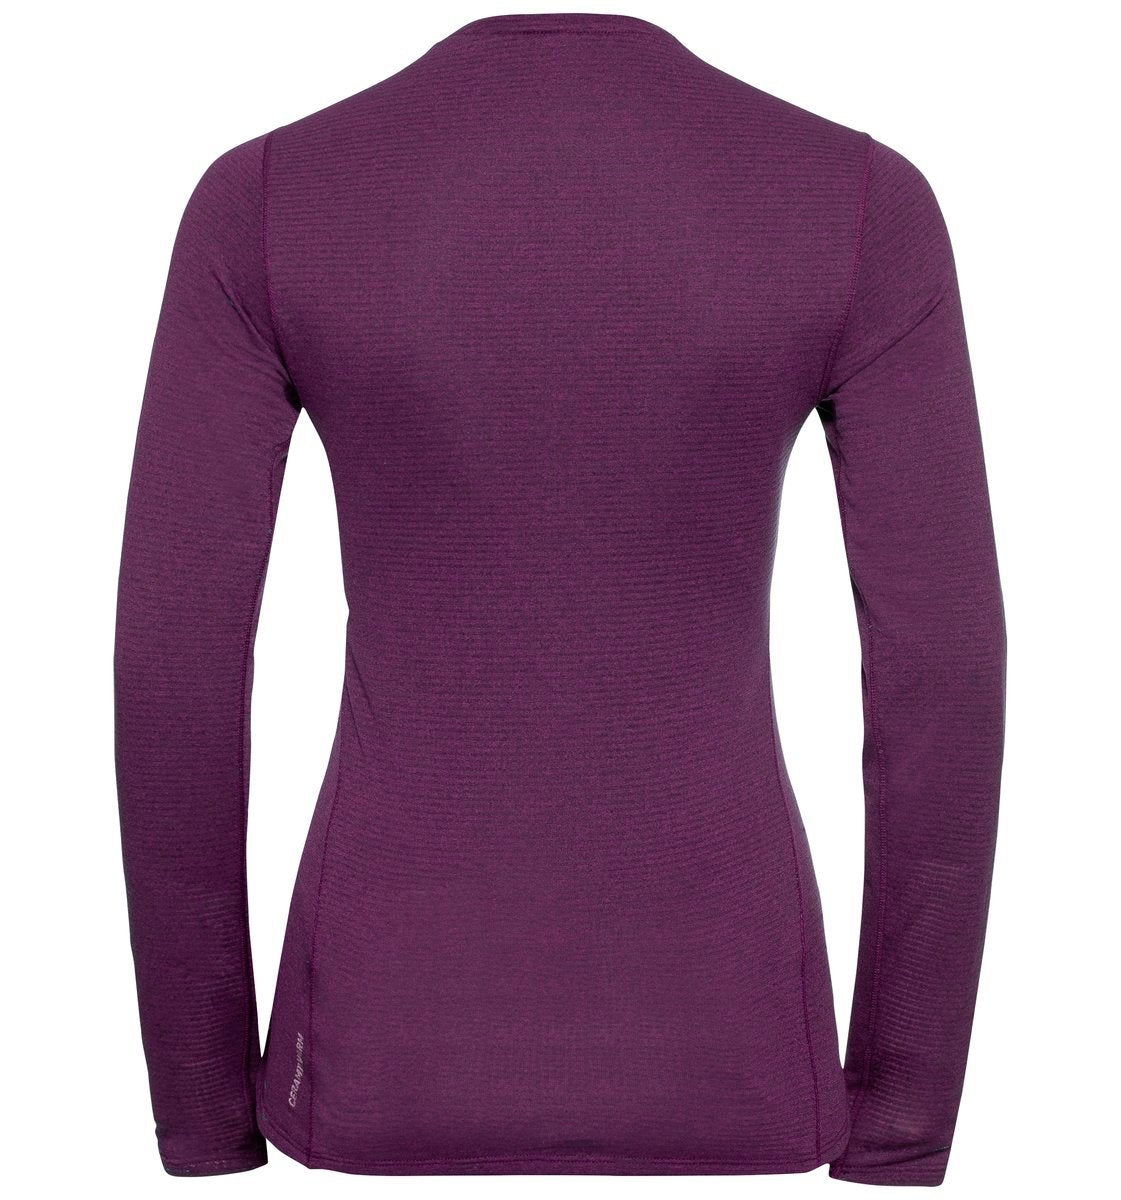 Odlo Women's ACTIVE THERMIC Long-Sleeve Baselayer